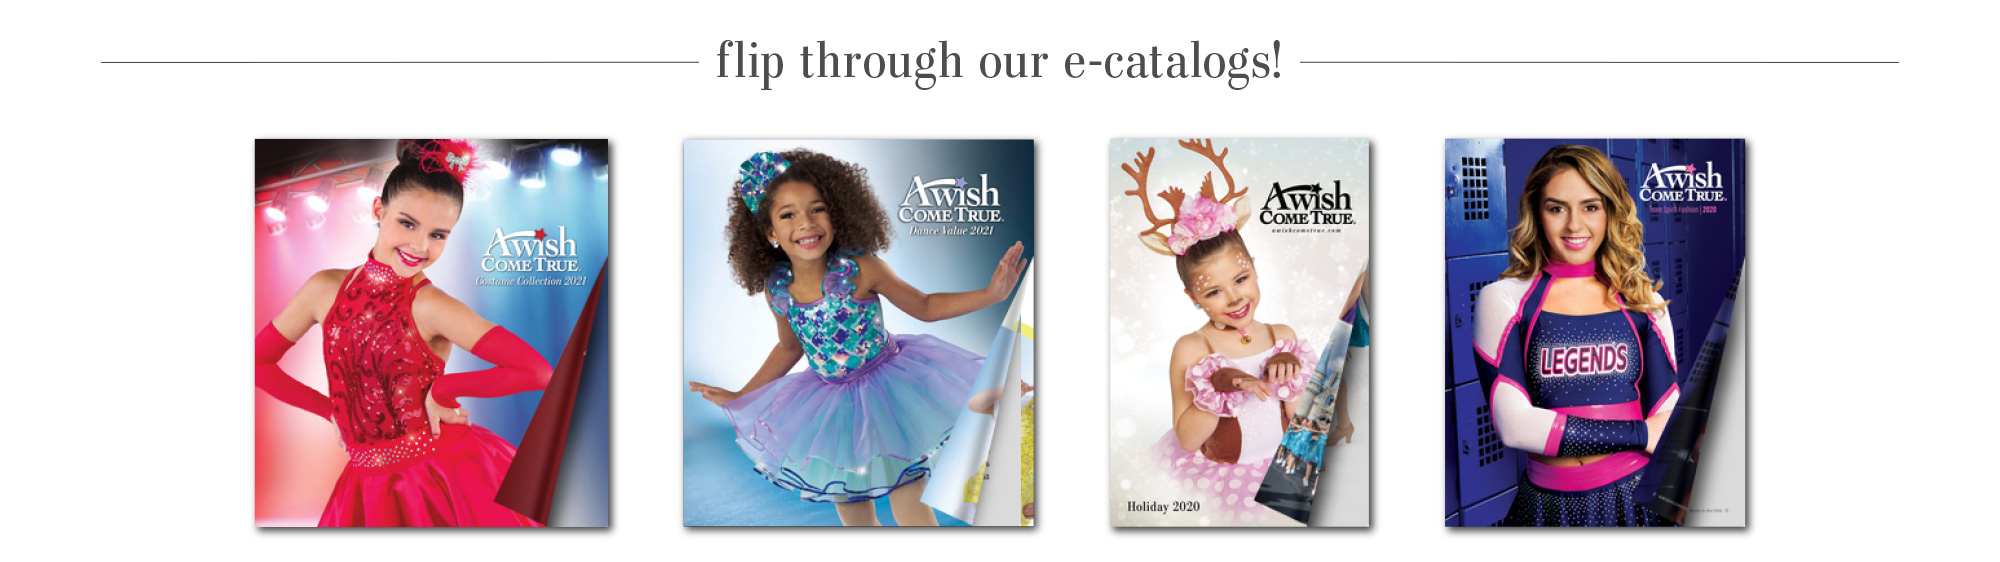 Flip through our e-catalogs!